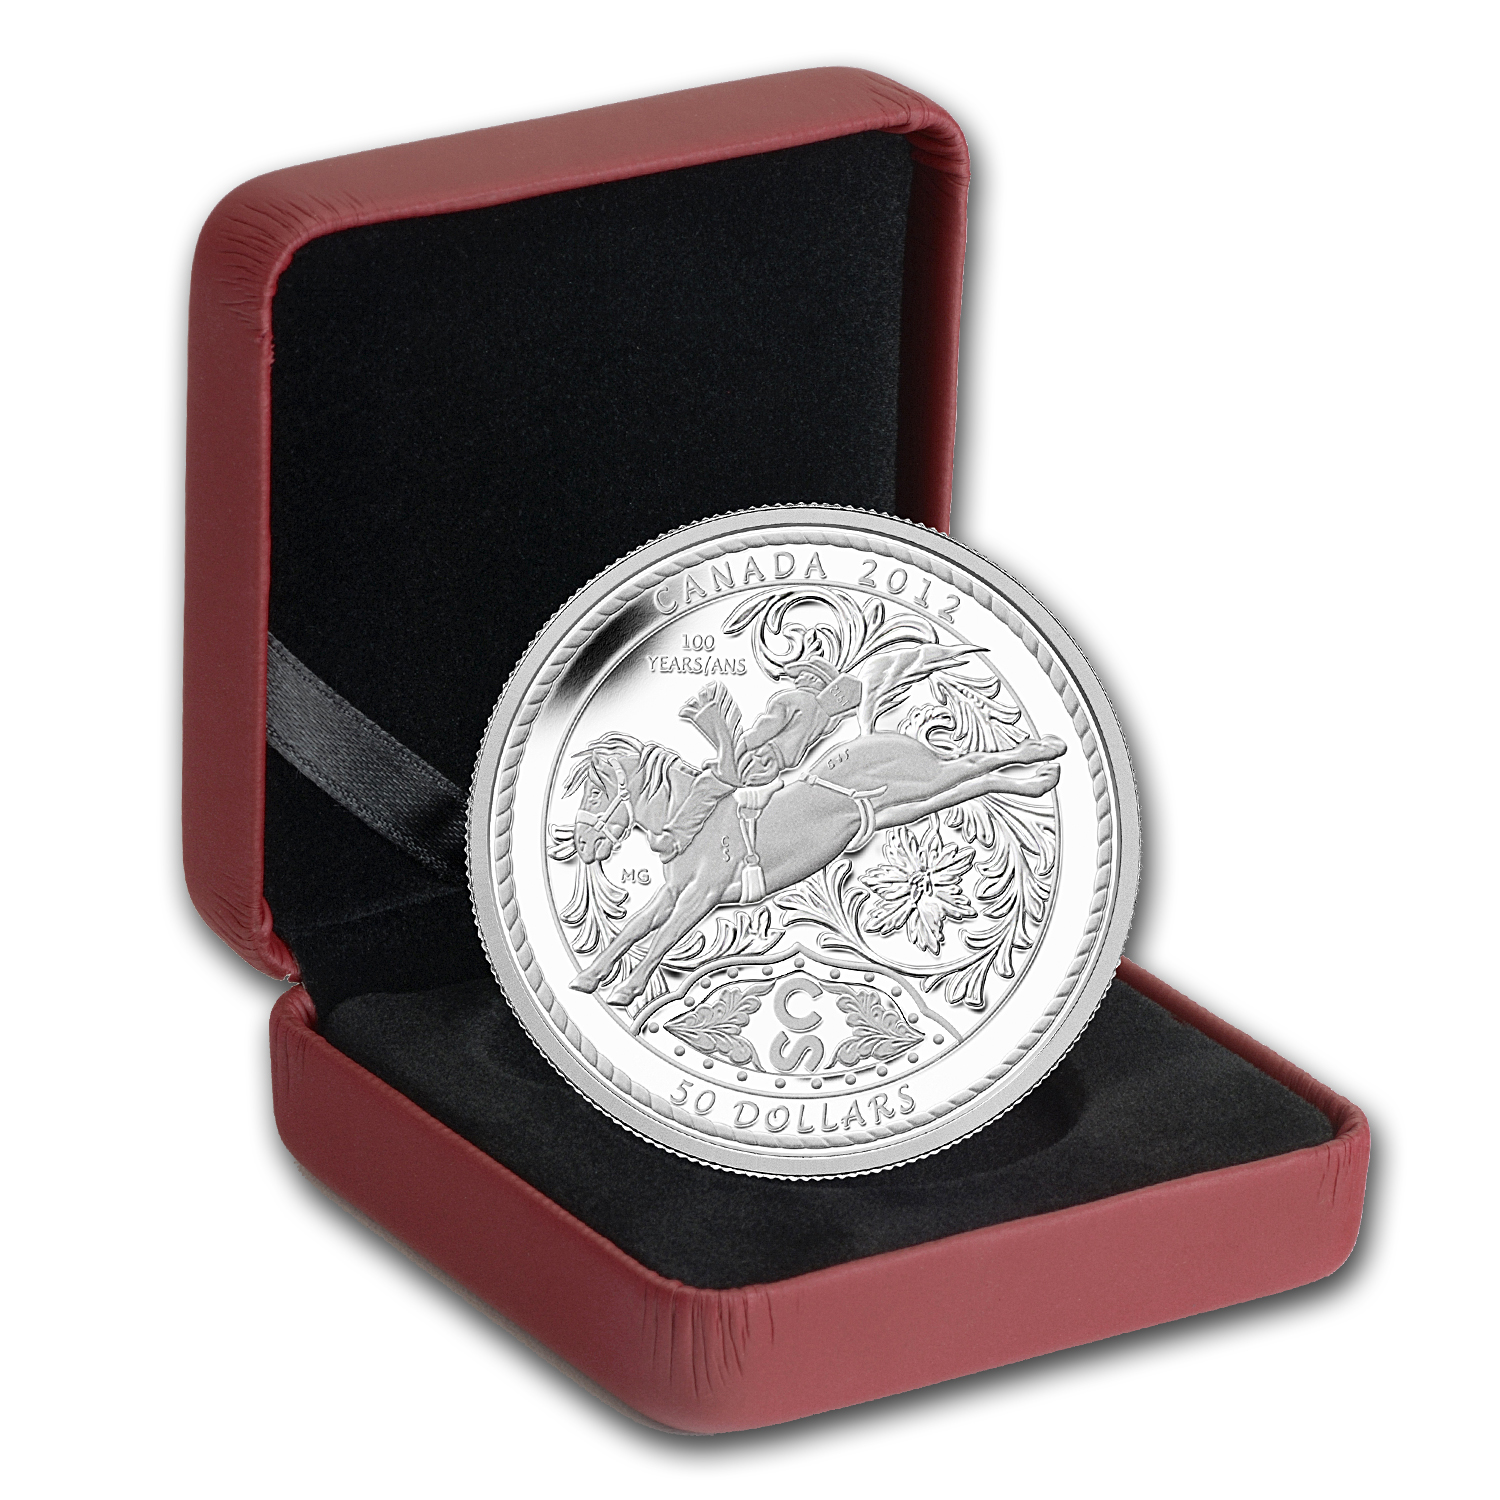 2012 5 oz Silver Canadian $50 - Calgary Stampede Bucking Bronco